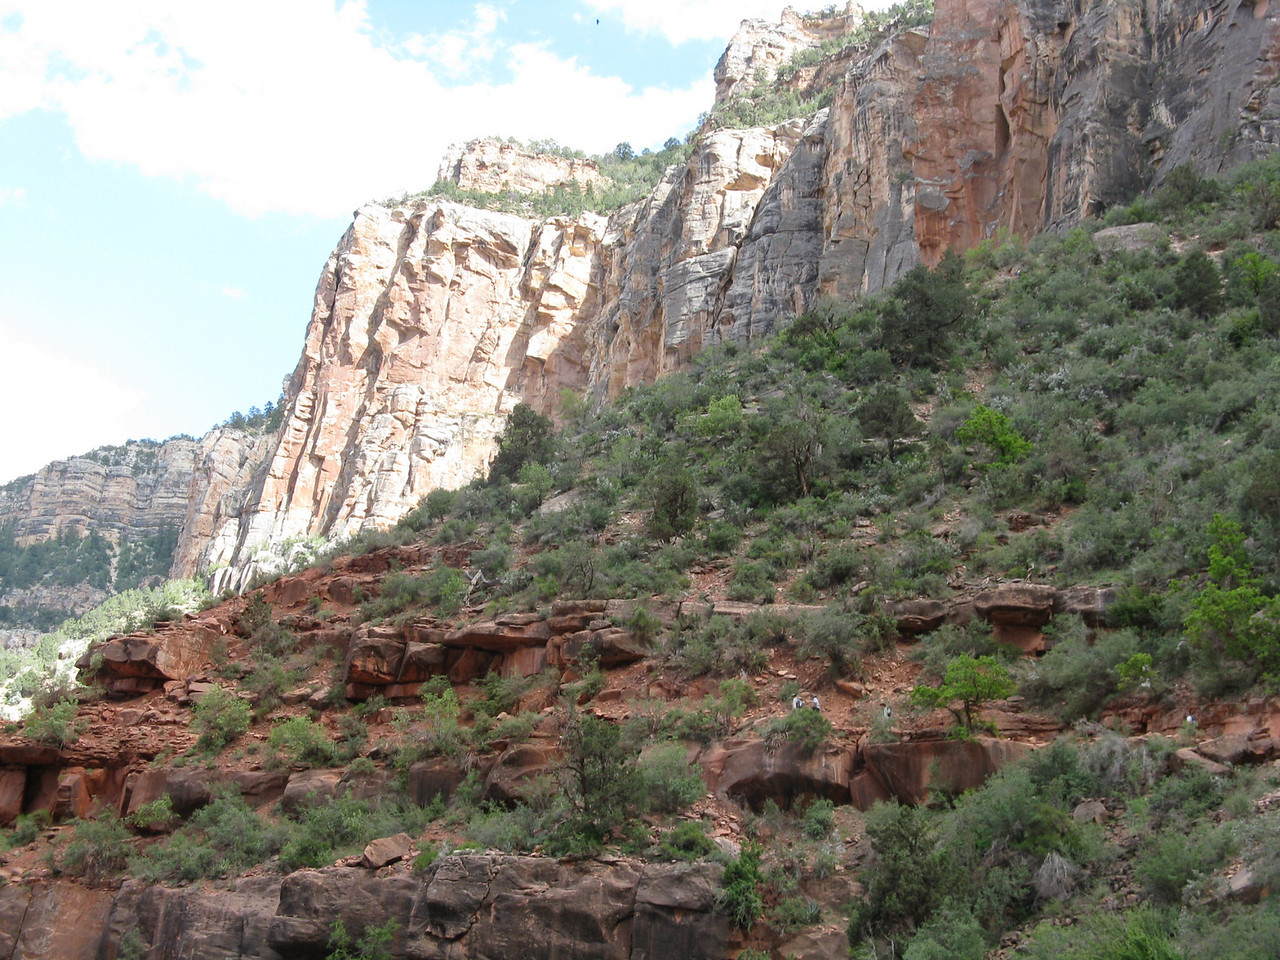 On the lower part of the picture is the trail in the Supai Group of rocks.  Above are the Coconino Sandstone cliffs.  In between these two layers is the Hermit Formation (not well seen).